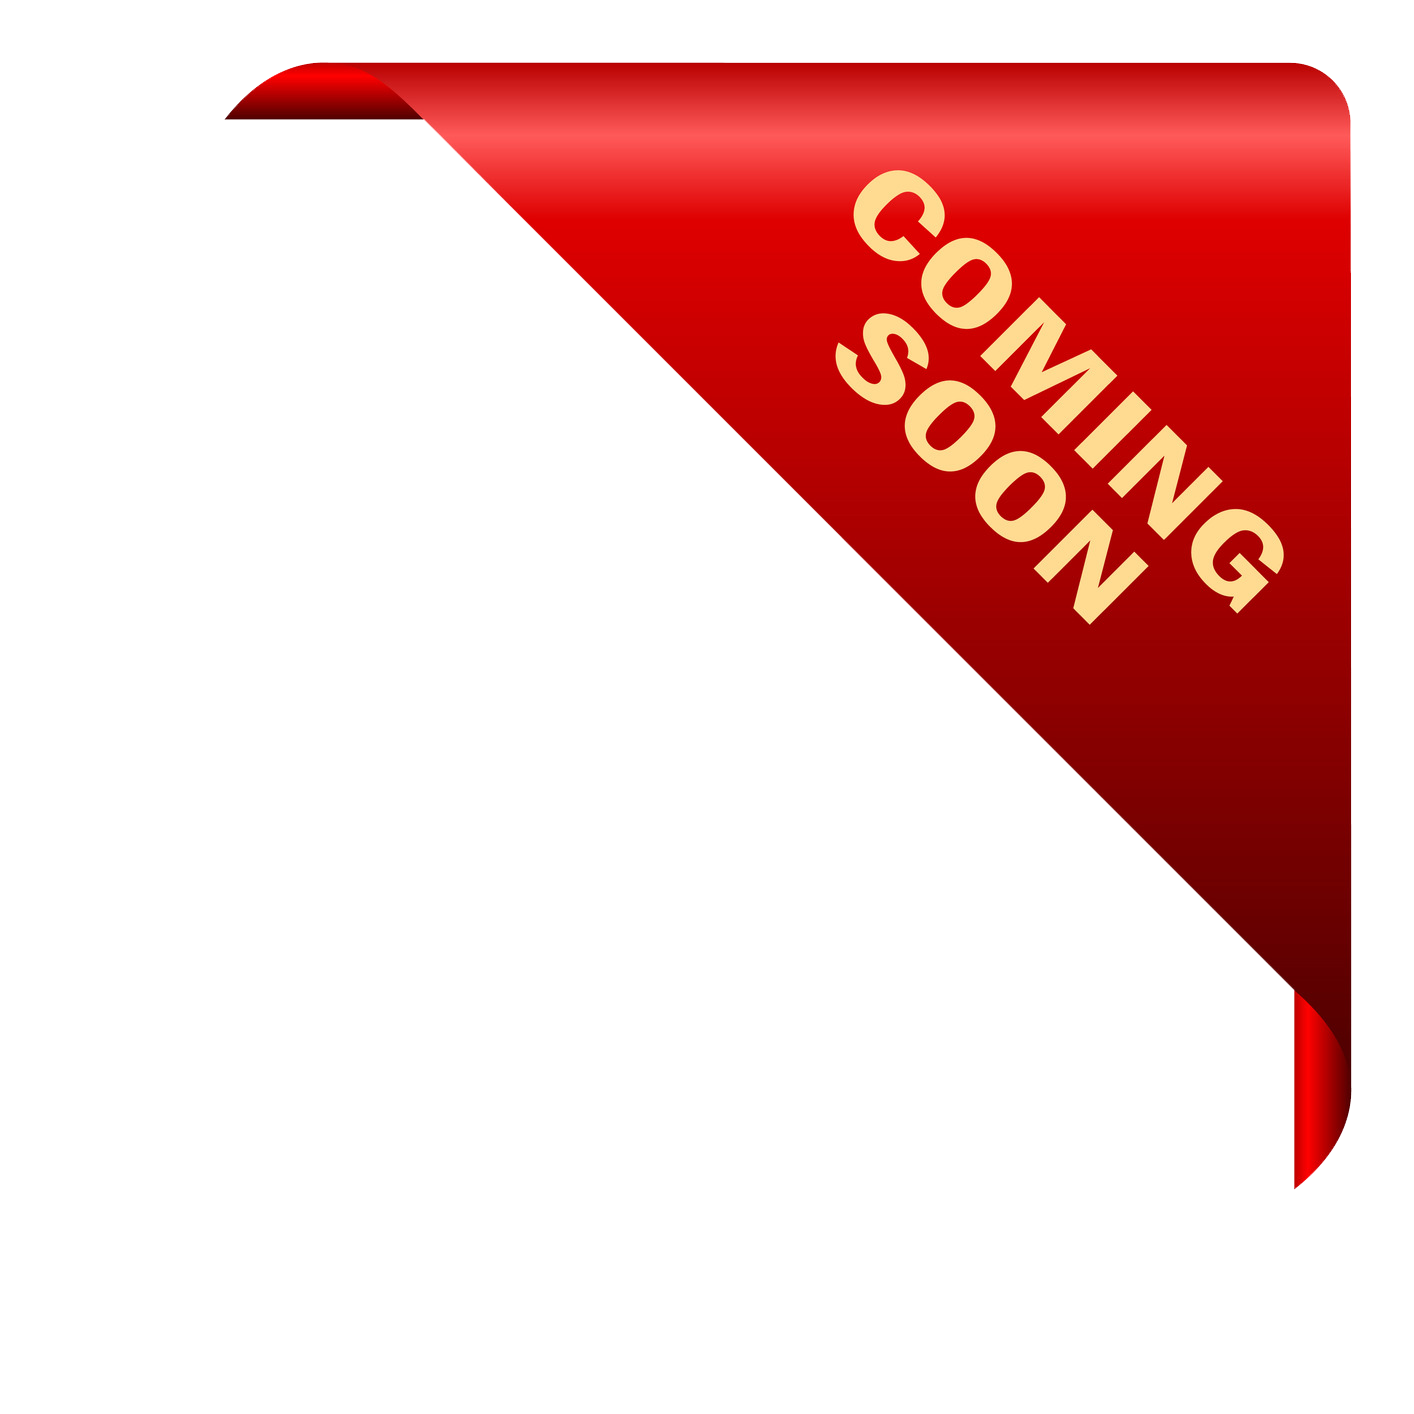 Coming soon banner clipart png library library Free PNG Coming Soon | Konfest png library library